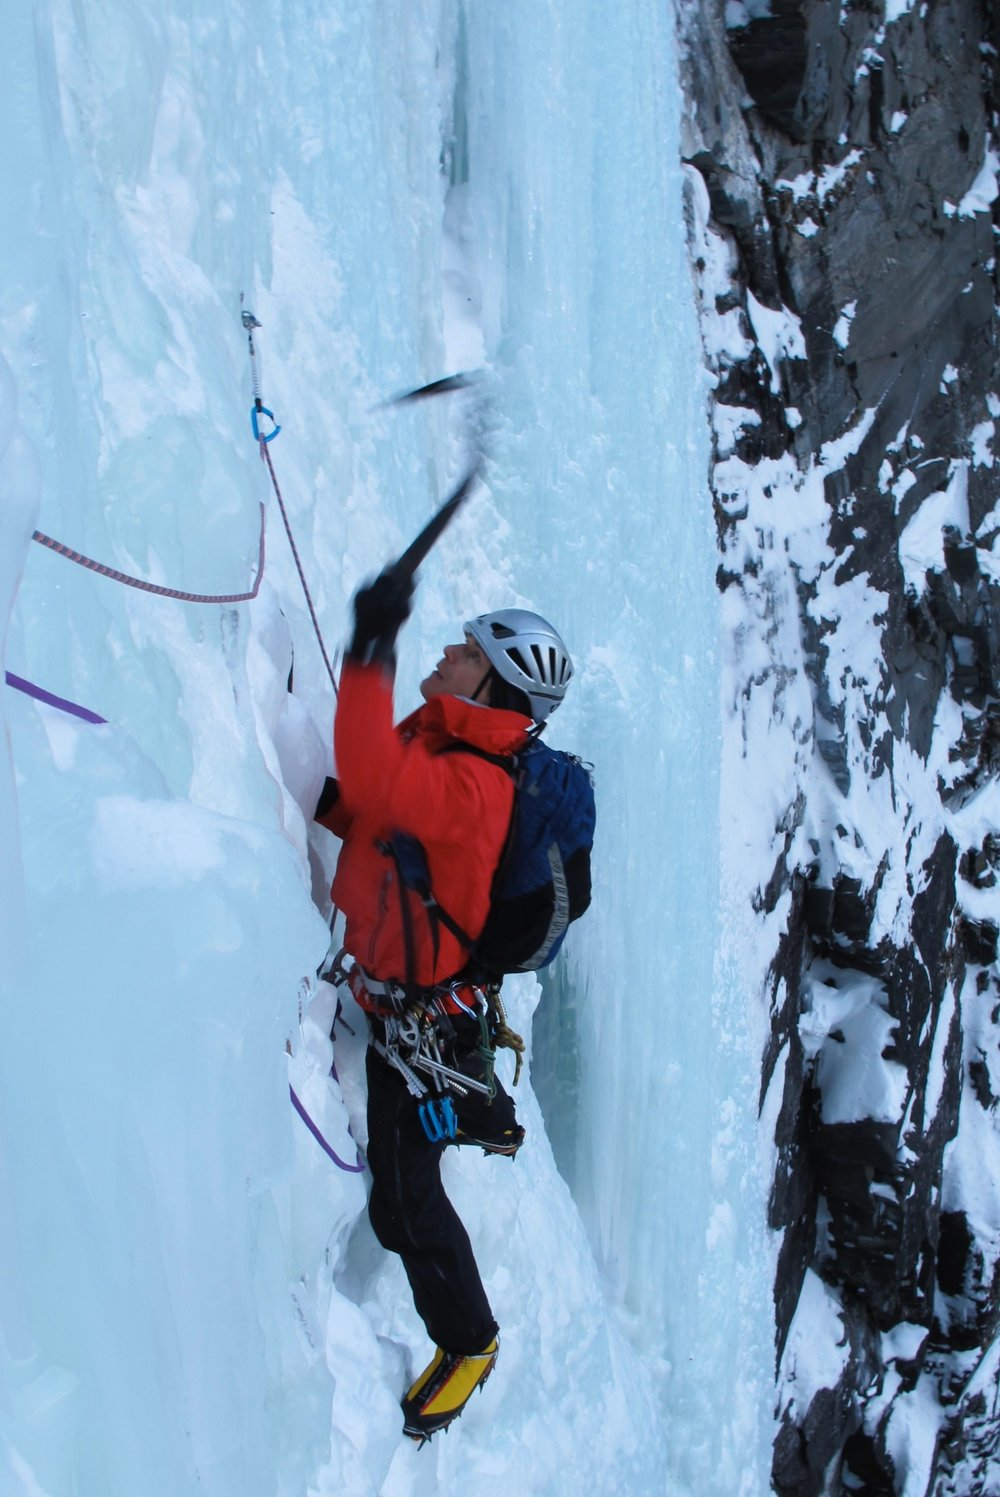 Pushing the Escapist 20 pack to its limit in Arctic Norway on Ormadelfossen WI 6.